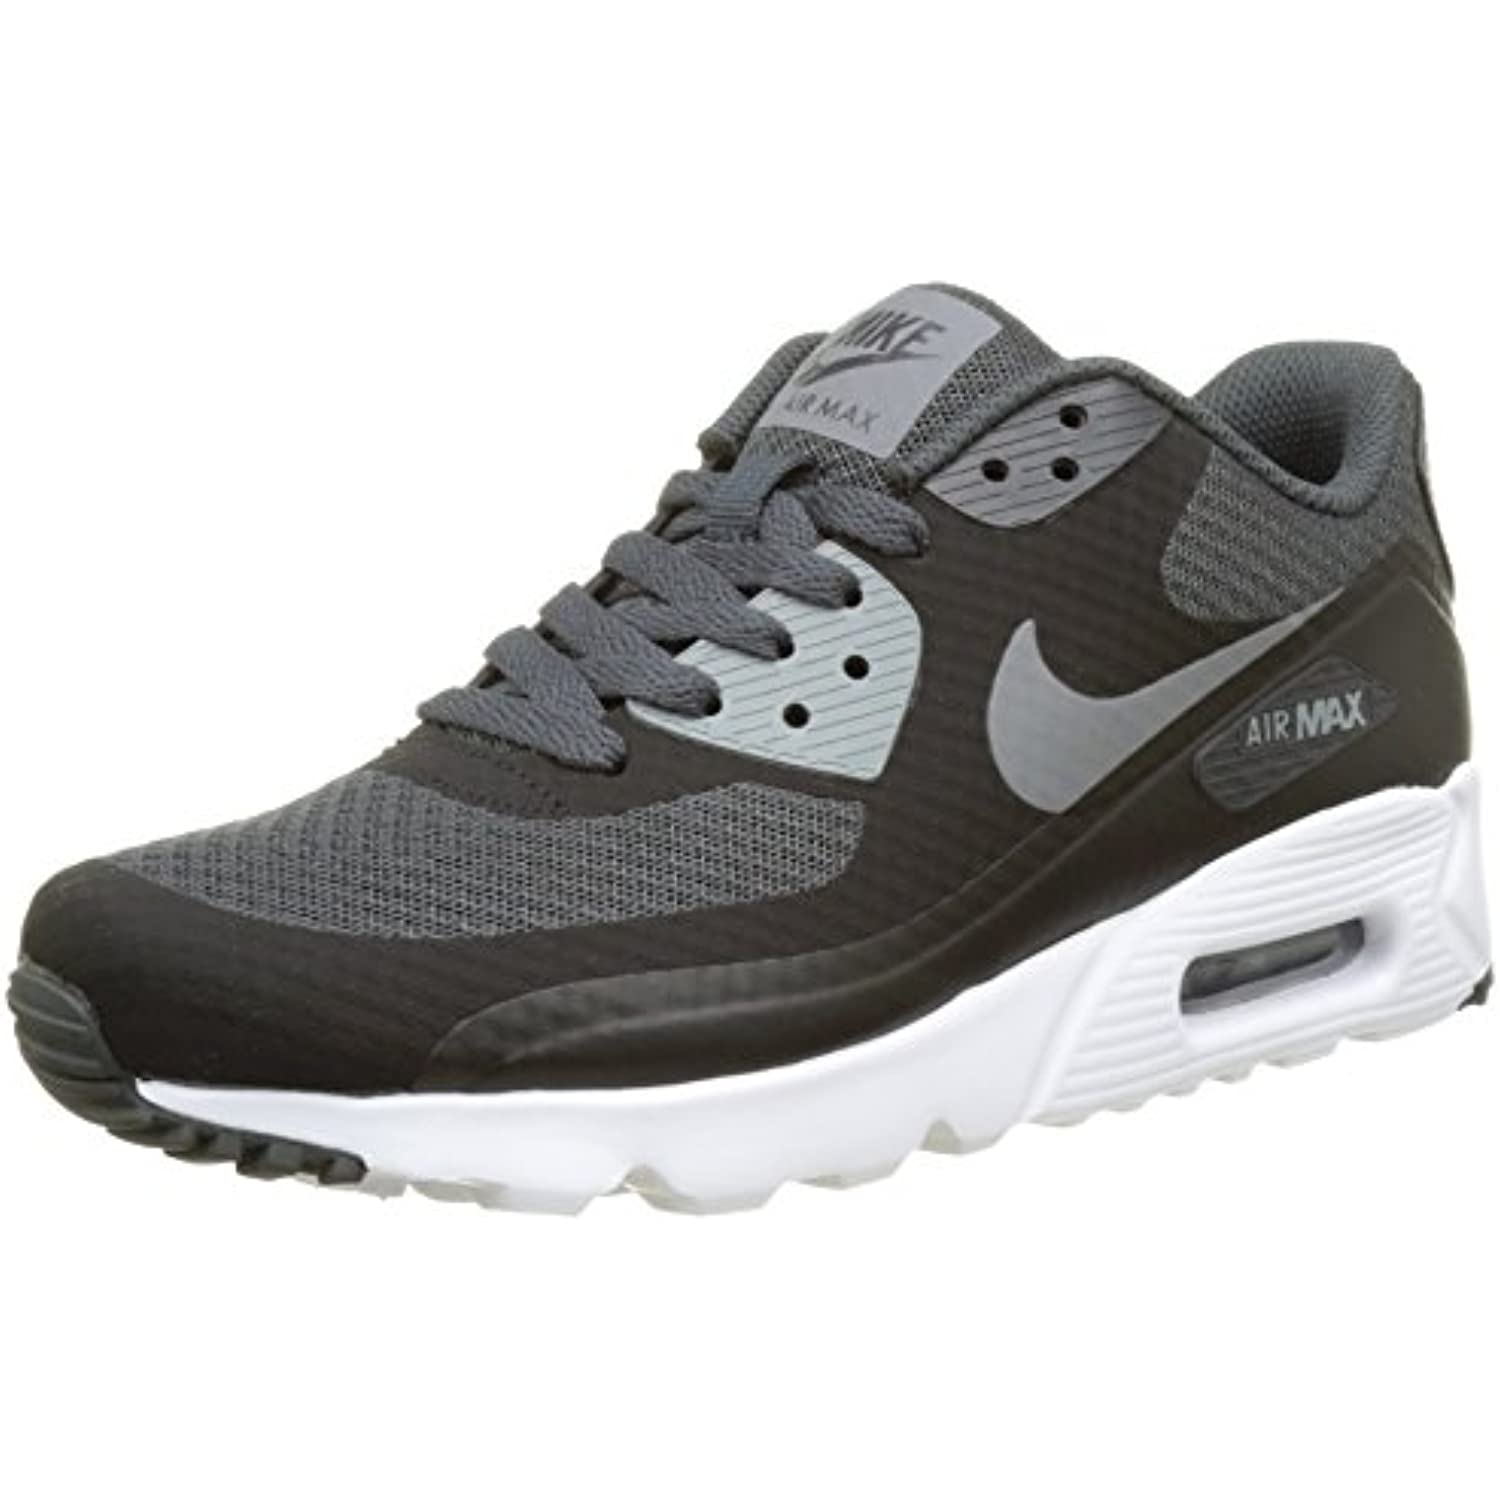 lowest price 0c1a2 236ee NIKE NIKE NIKE Air Max 90 Ultra Essential, Chaussures de Running  EntraineHommest Homme - B01I9KLQP0 - 881e98